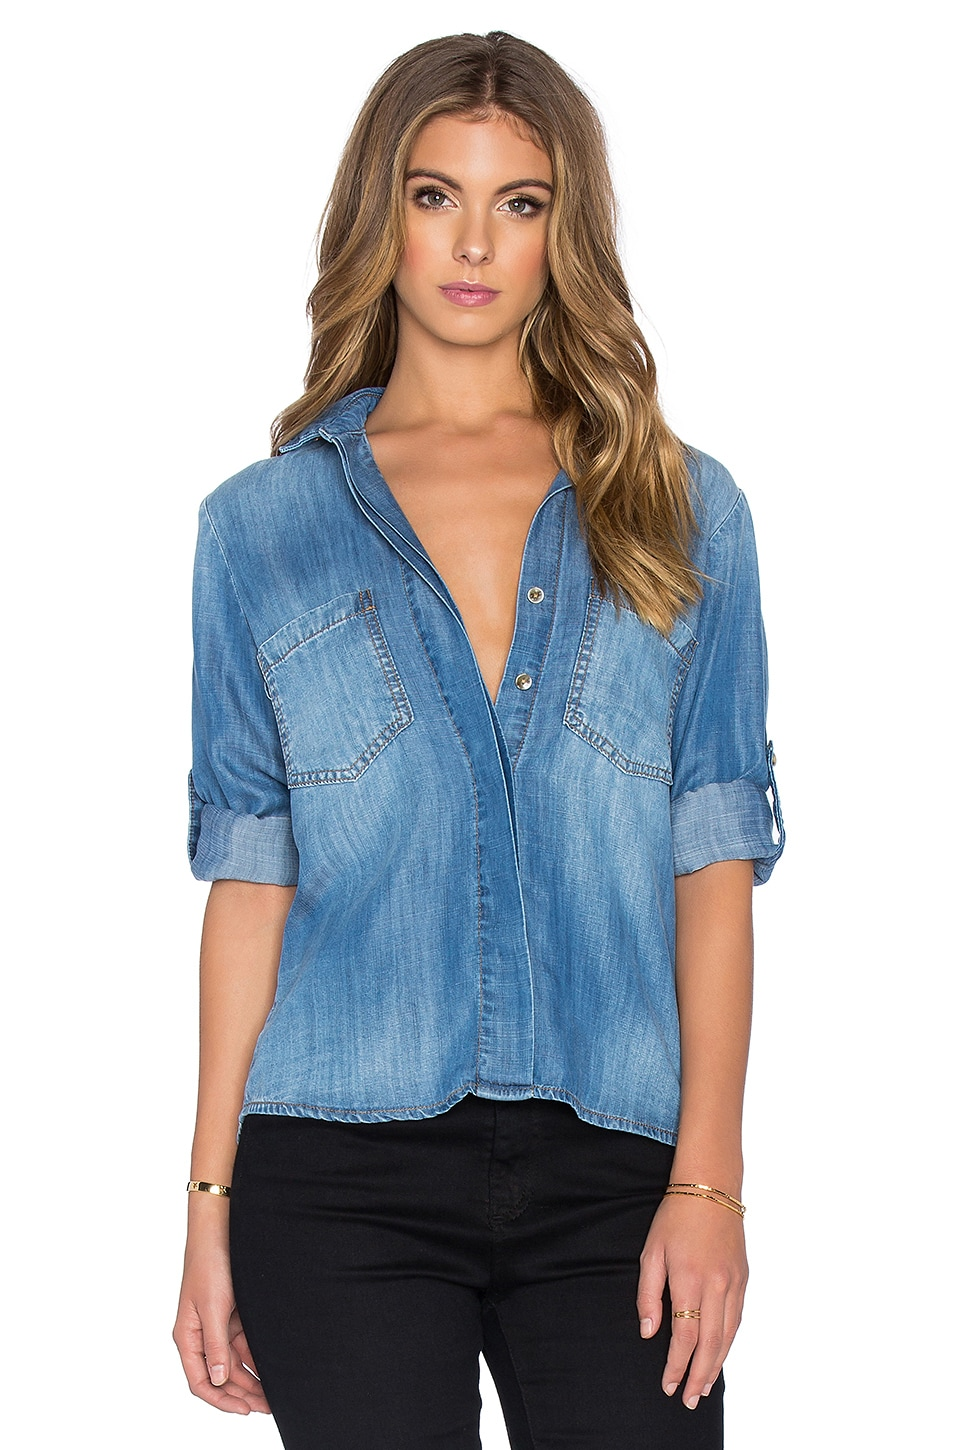 Bella Dahl Split Back Button Up in Vintage Malibu Wash